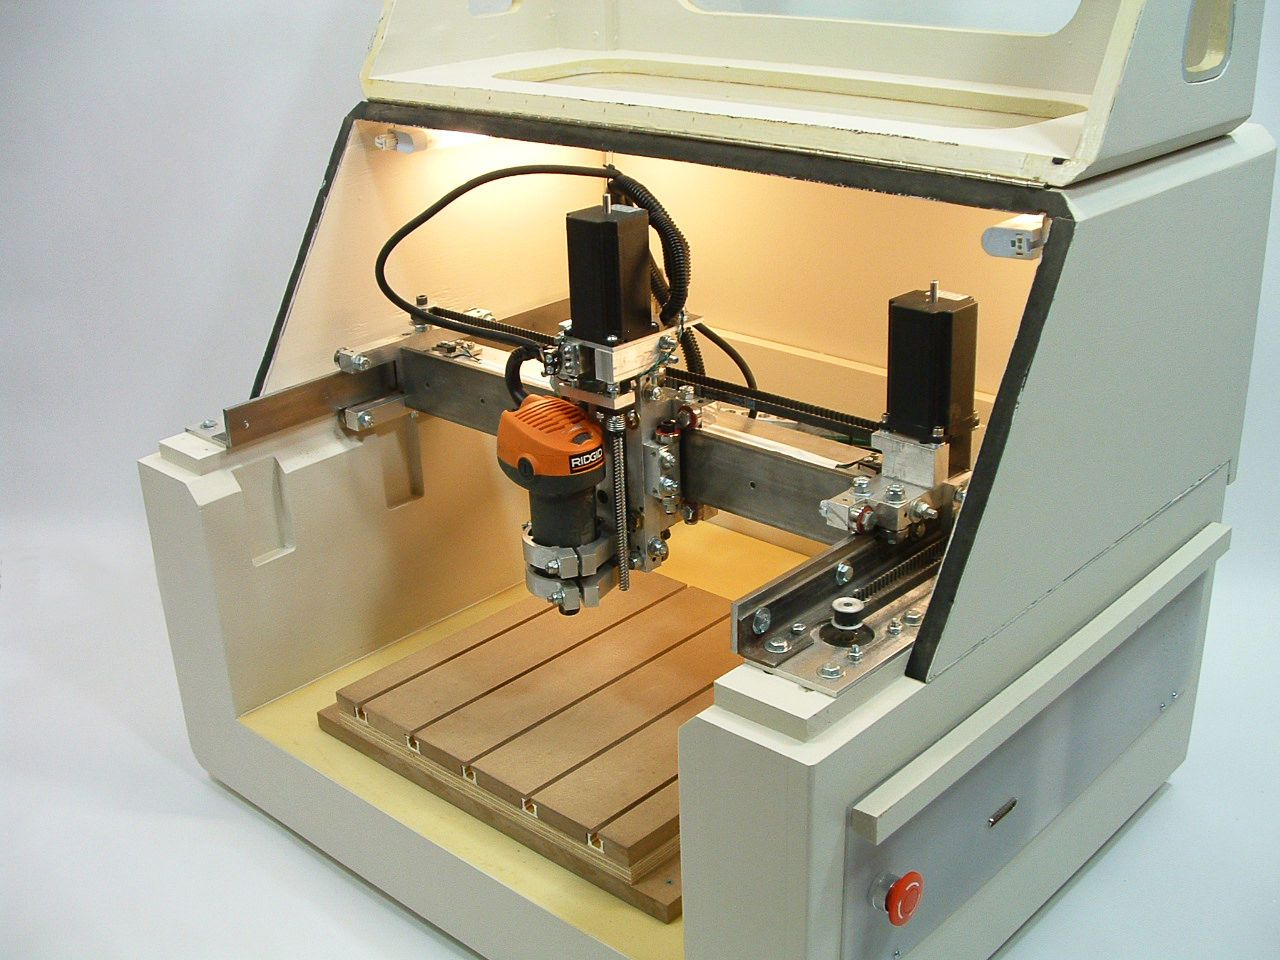 Plans to build cnc 3 axis router table milling machine engraver plans to build cnc 3 axis router table milling machine engraver pdf download ebay greentooth Images